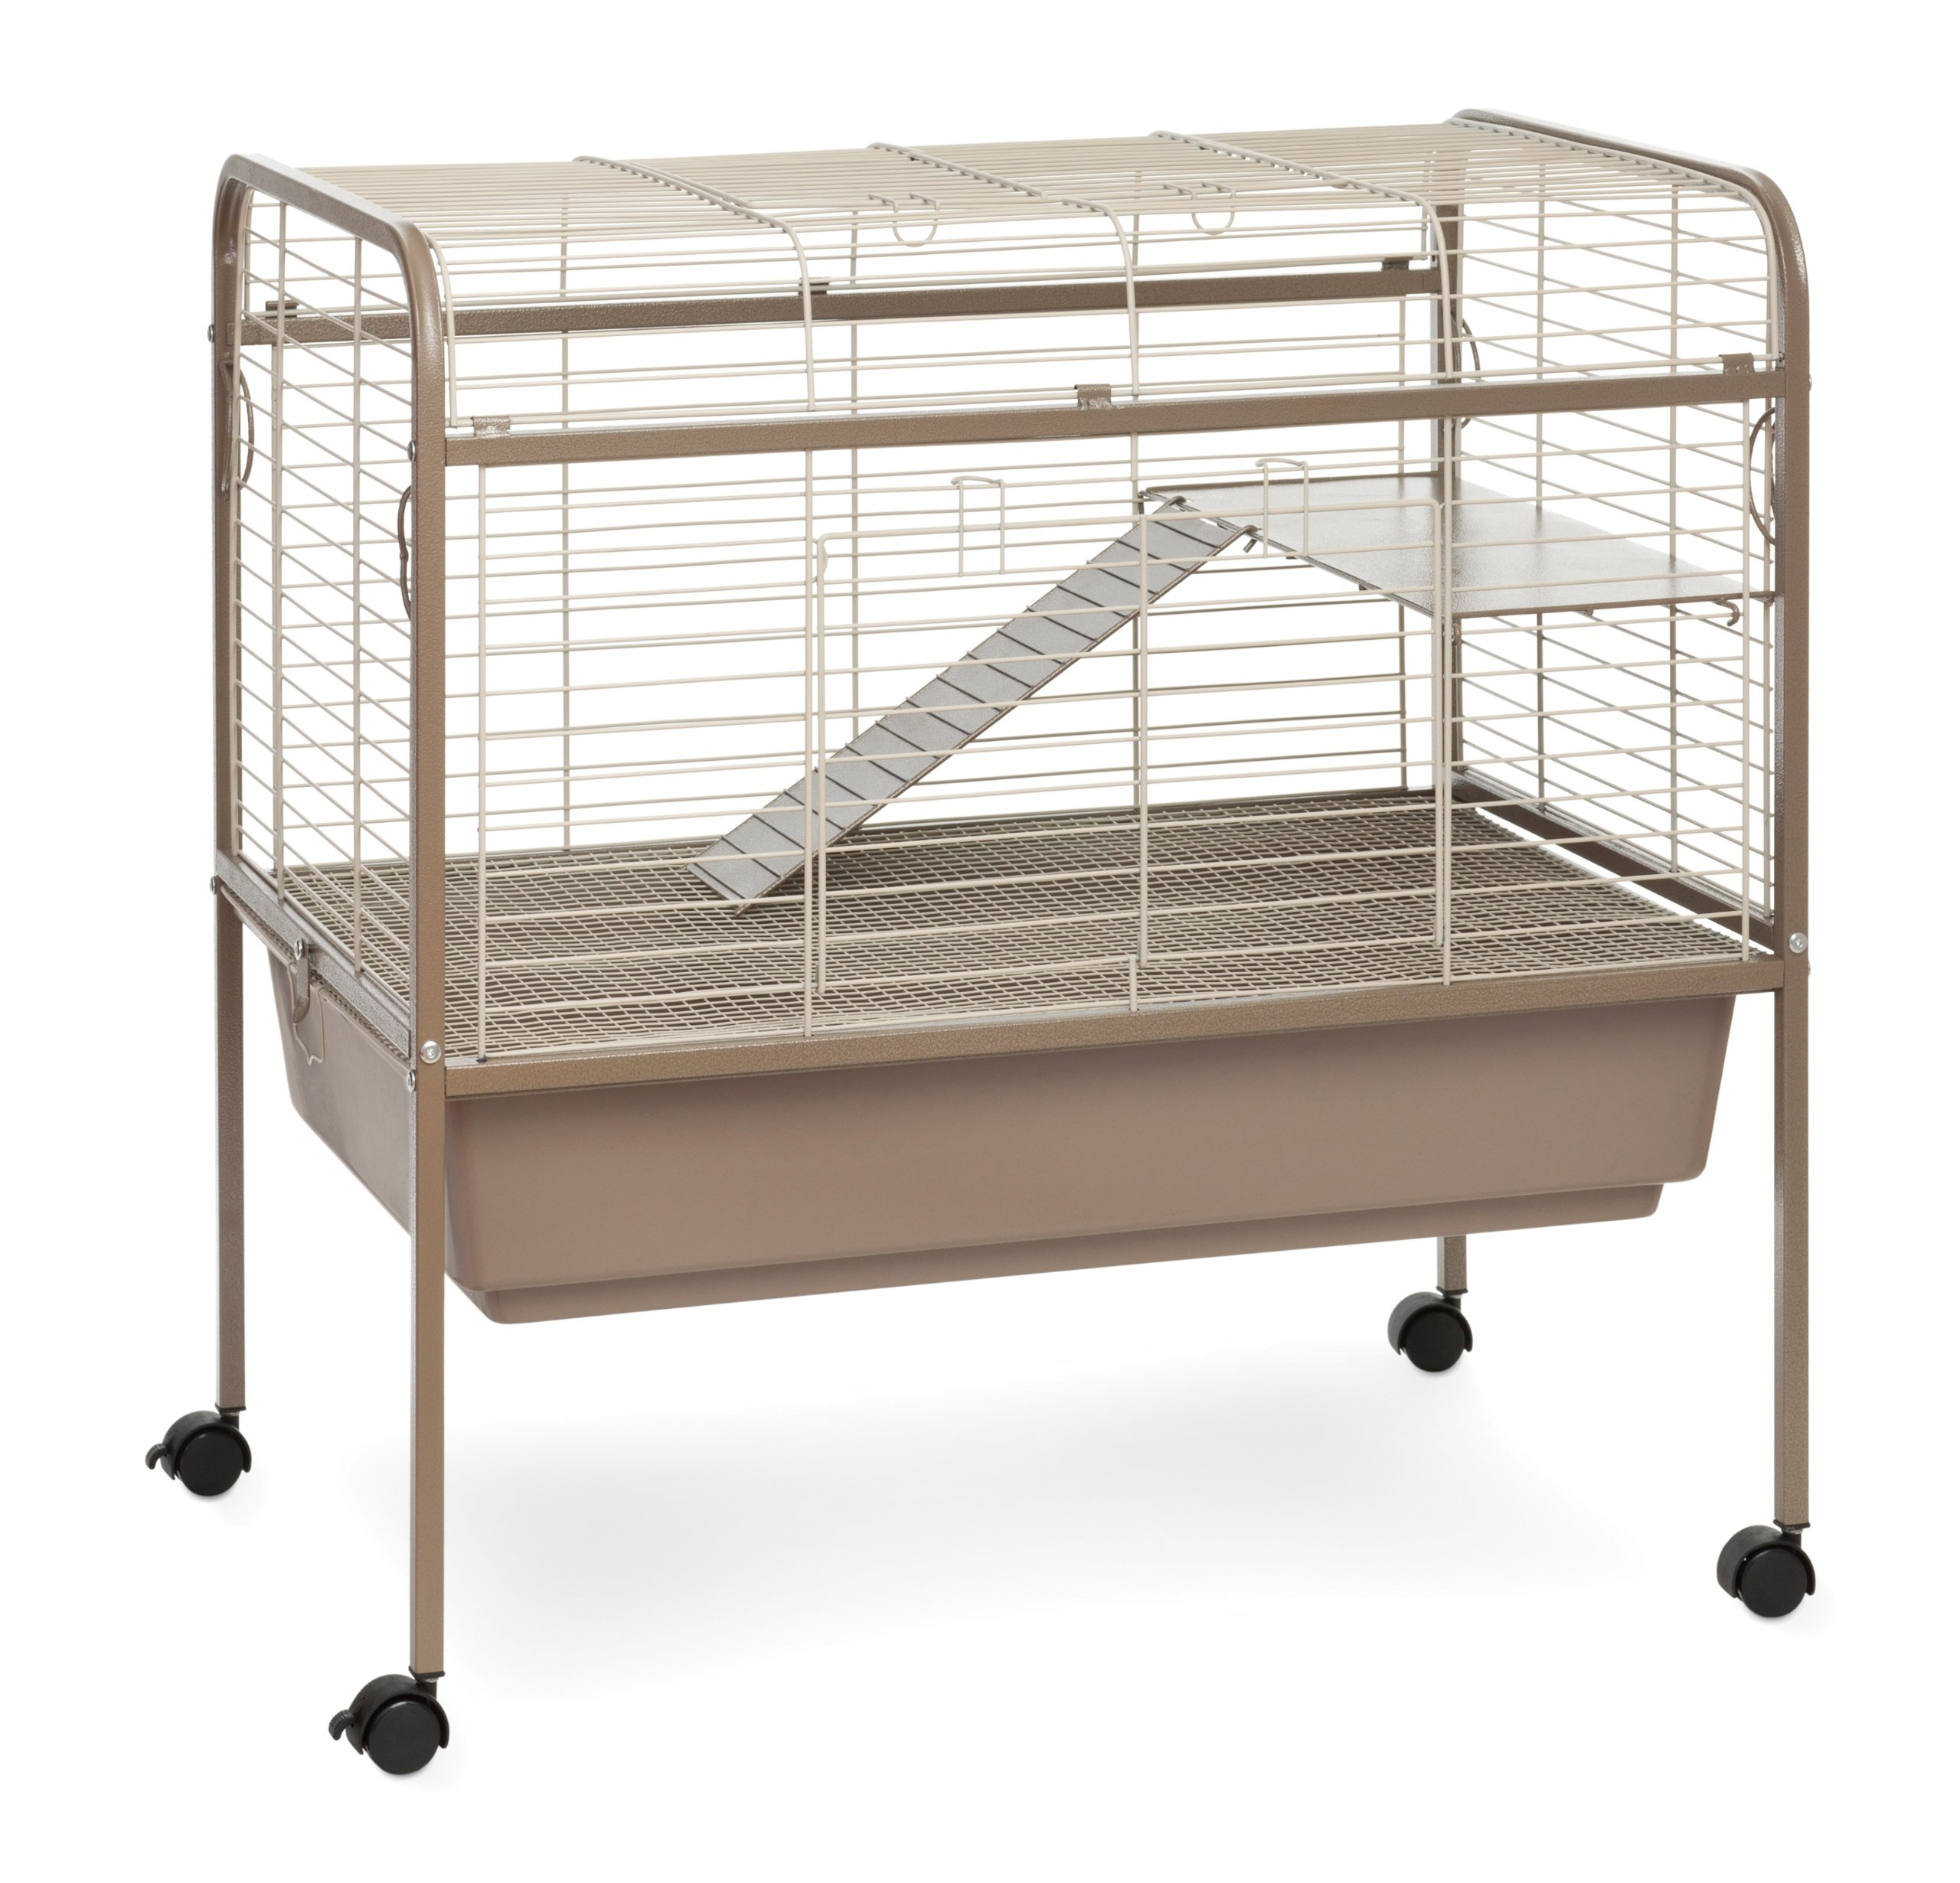 Prevue Hendryx 425 Pet Products Small Animal Cage with Stand, 32-Inch by 21-1/2-Inch by 33-1/2-Inch by Prevue Hendryx